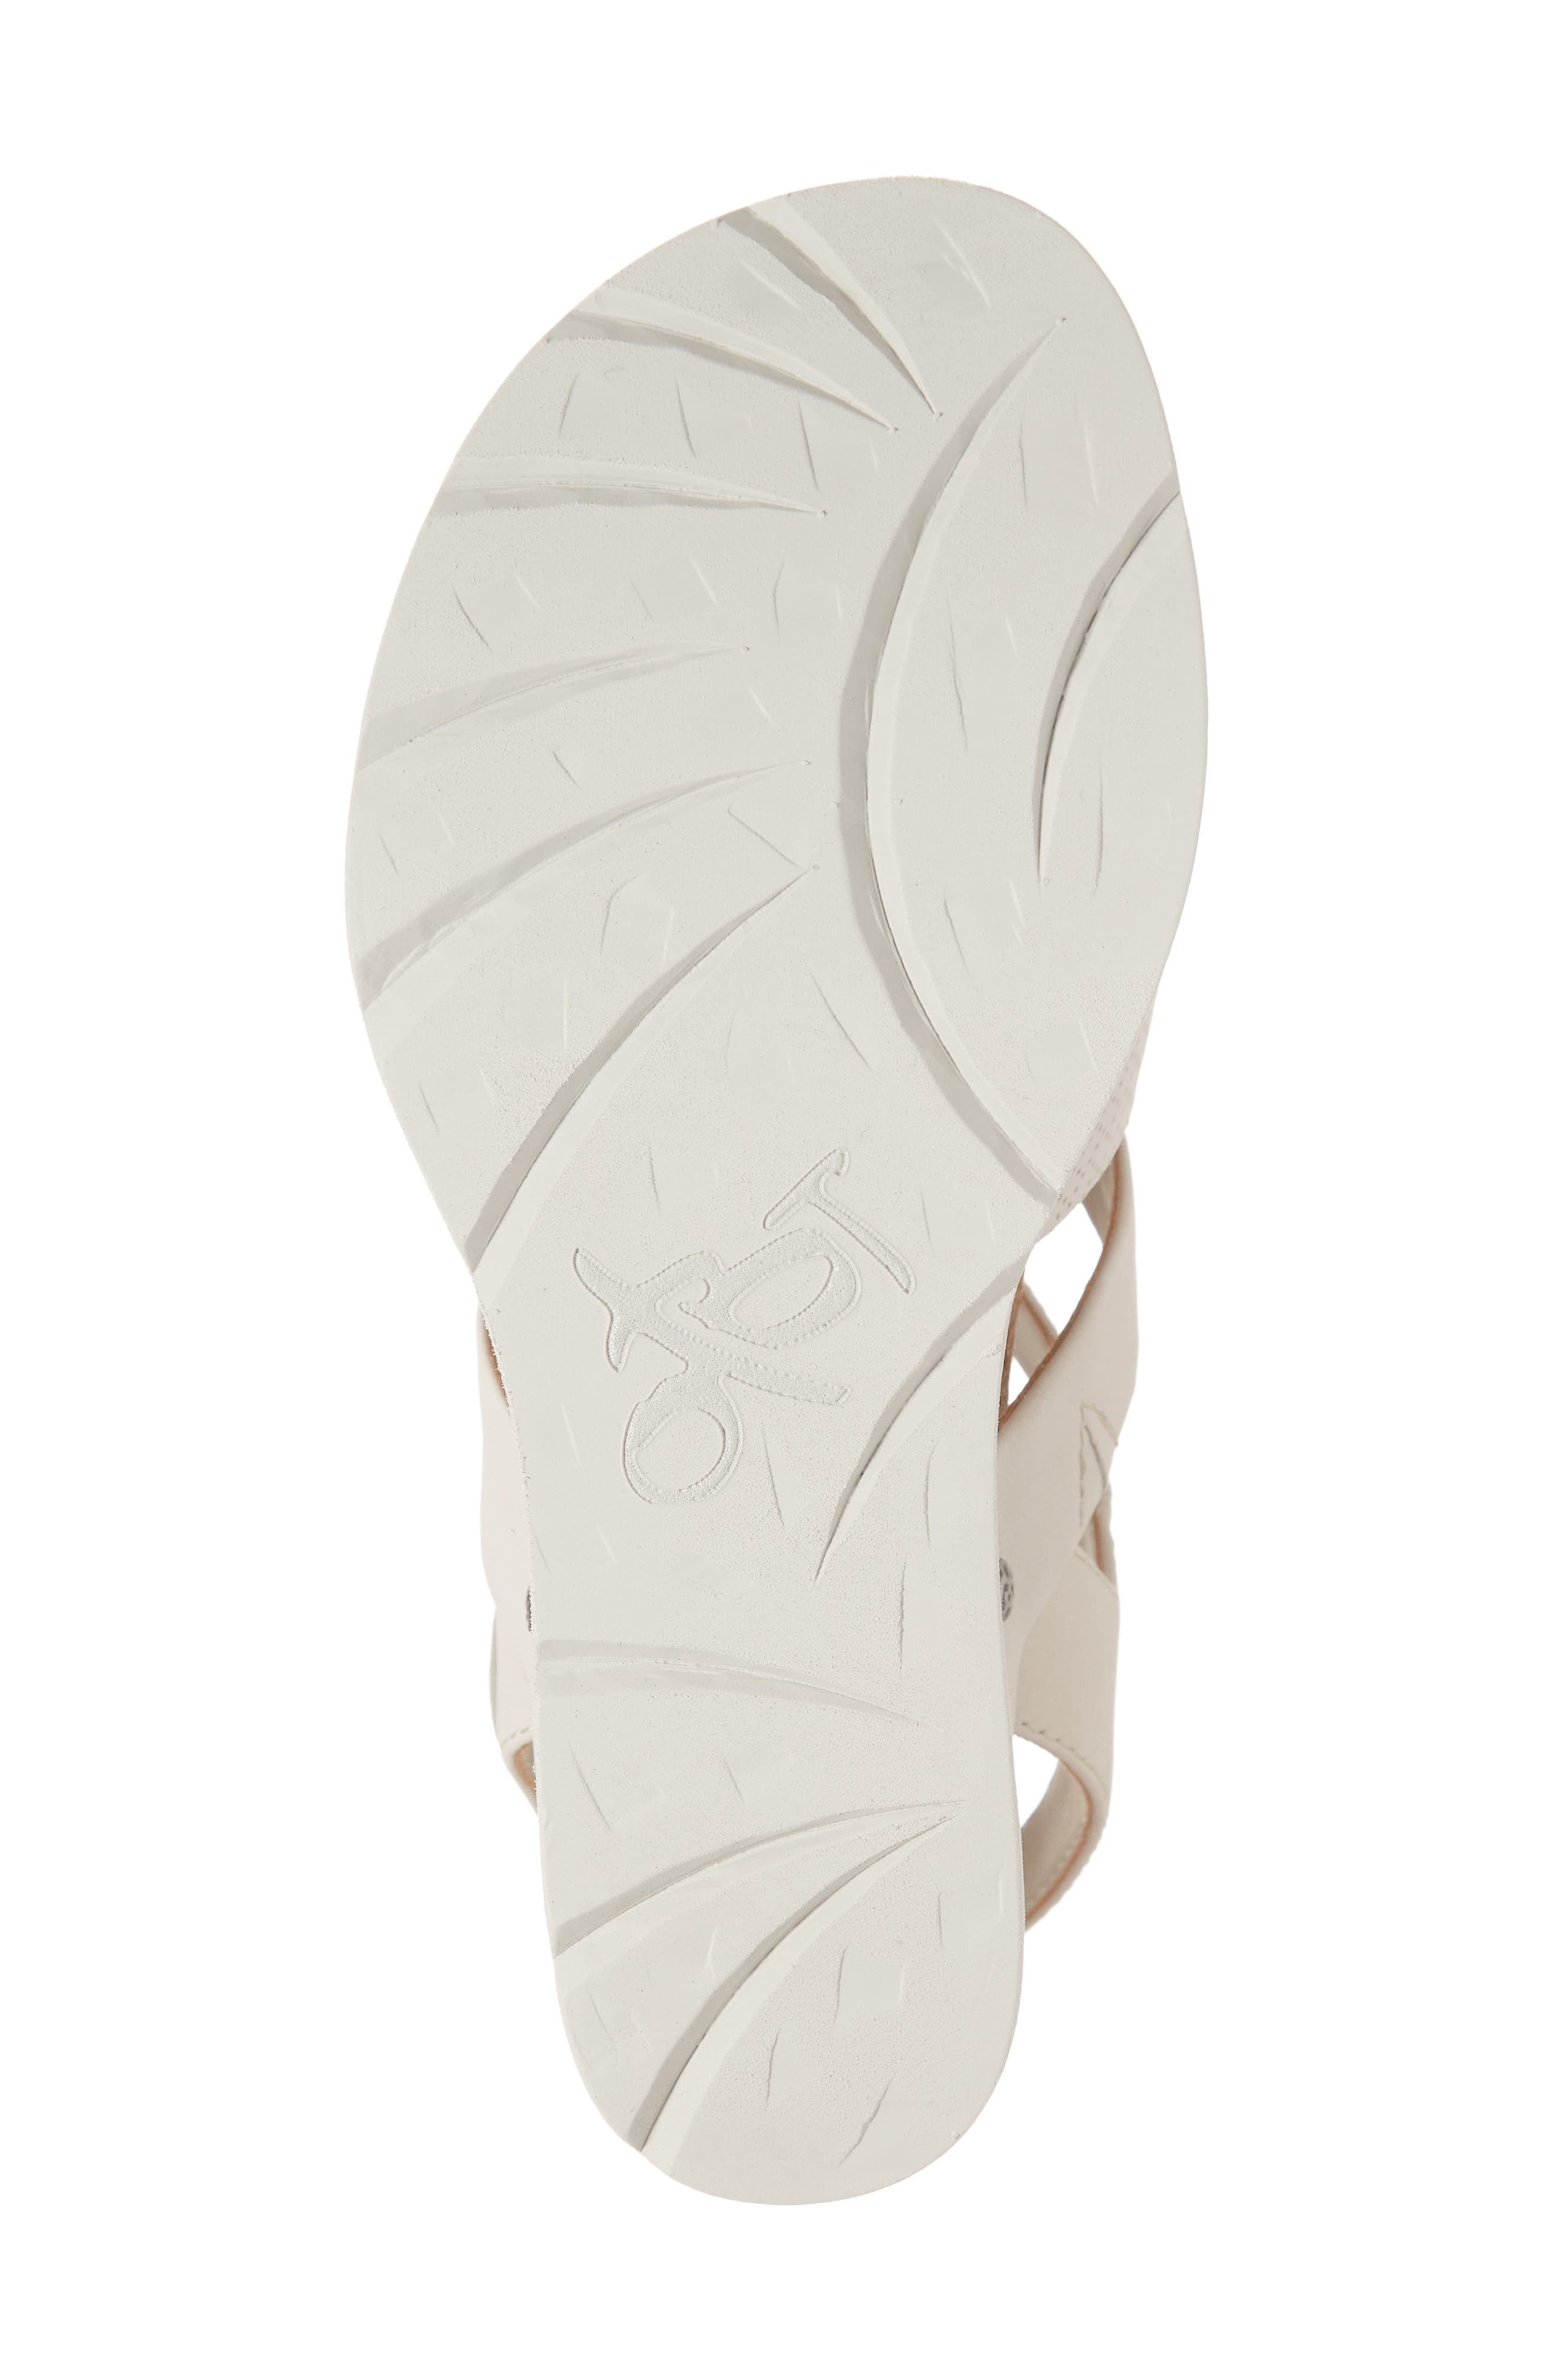 New Moon Wedge Sandal,                             Alternate thumbnail 6, color,                             DOVE GREY LEATHER